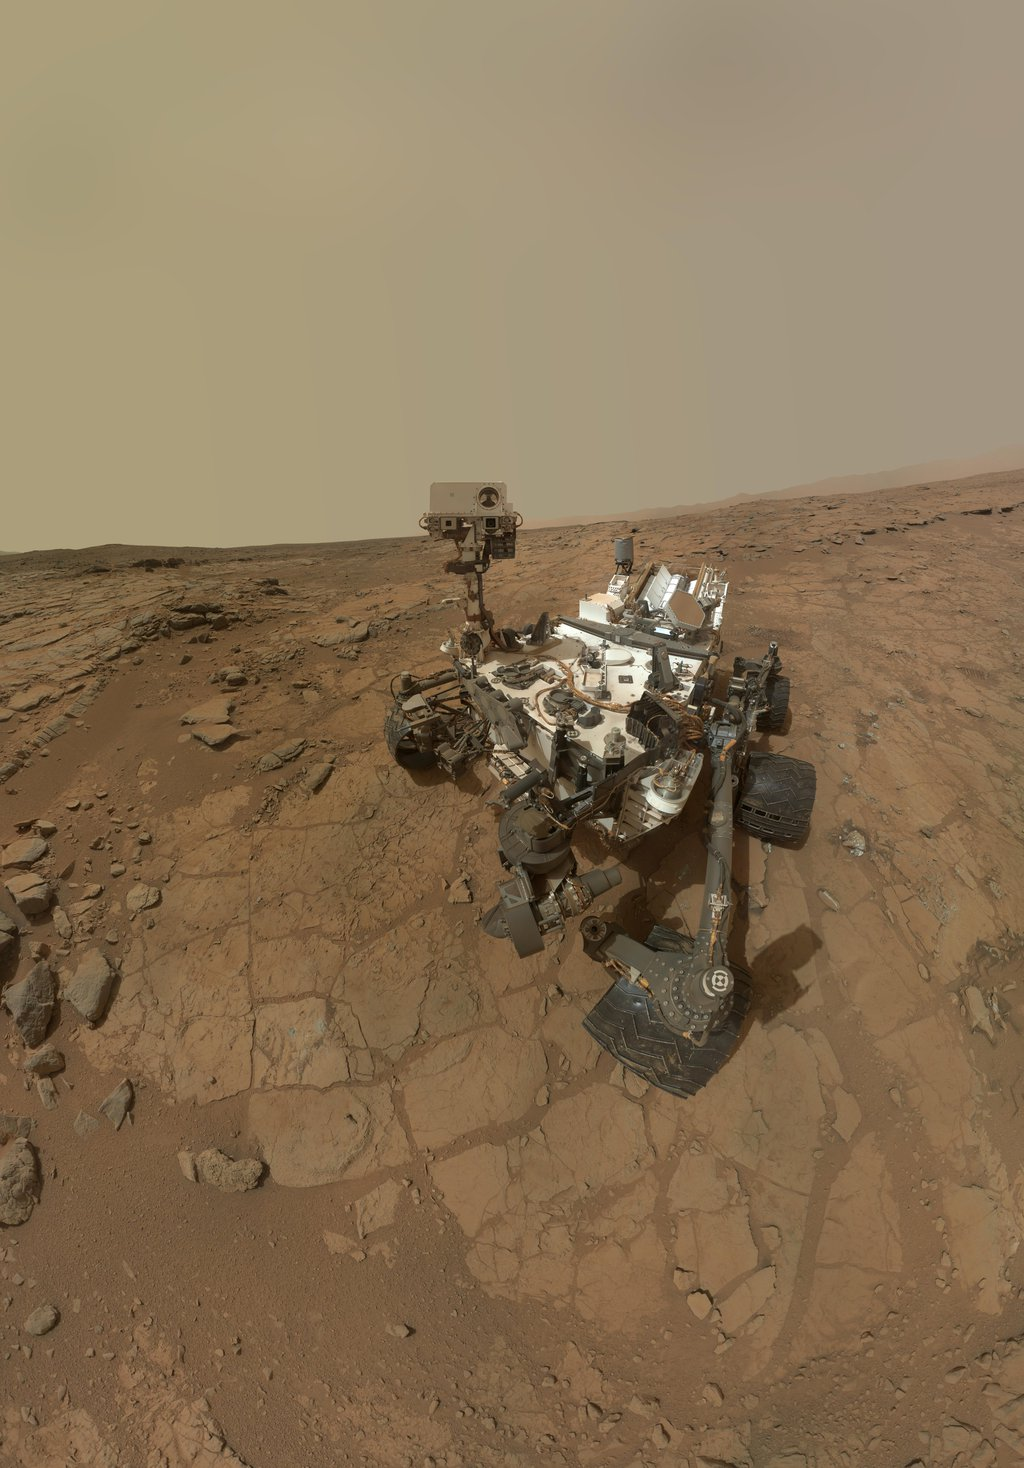 This rectangular version of a self-portrait of NASA's Mars rover Curiosity combines dozens of exposures taken by the rover's Mars Hand Lens Imager (MAHLI) during the 177th Martian day, or sol, of Curiosity's work on Mars (Feb. 3, 2013).